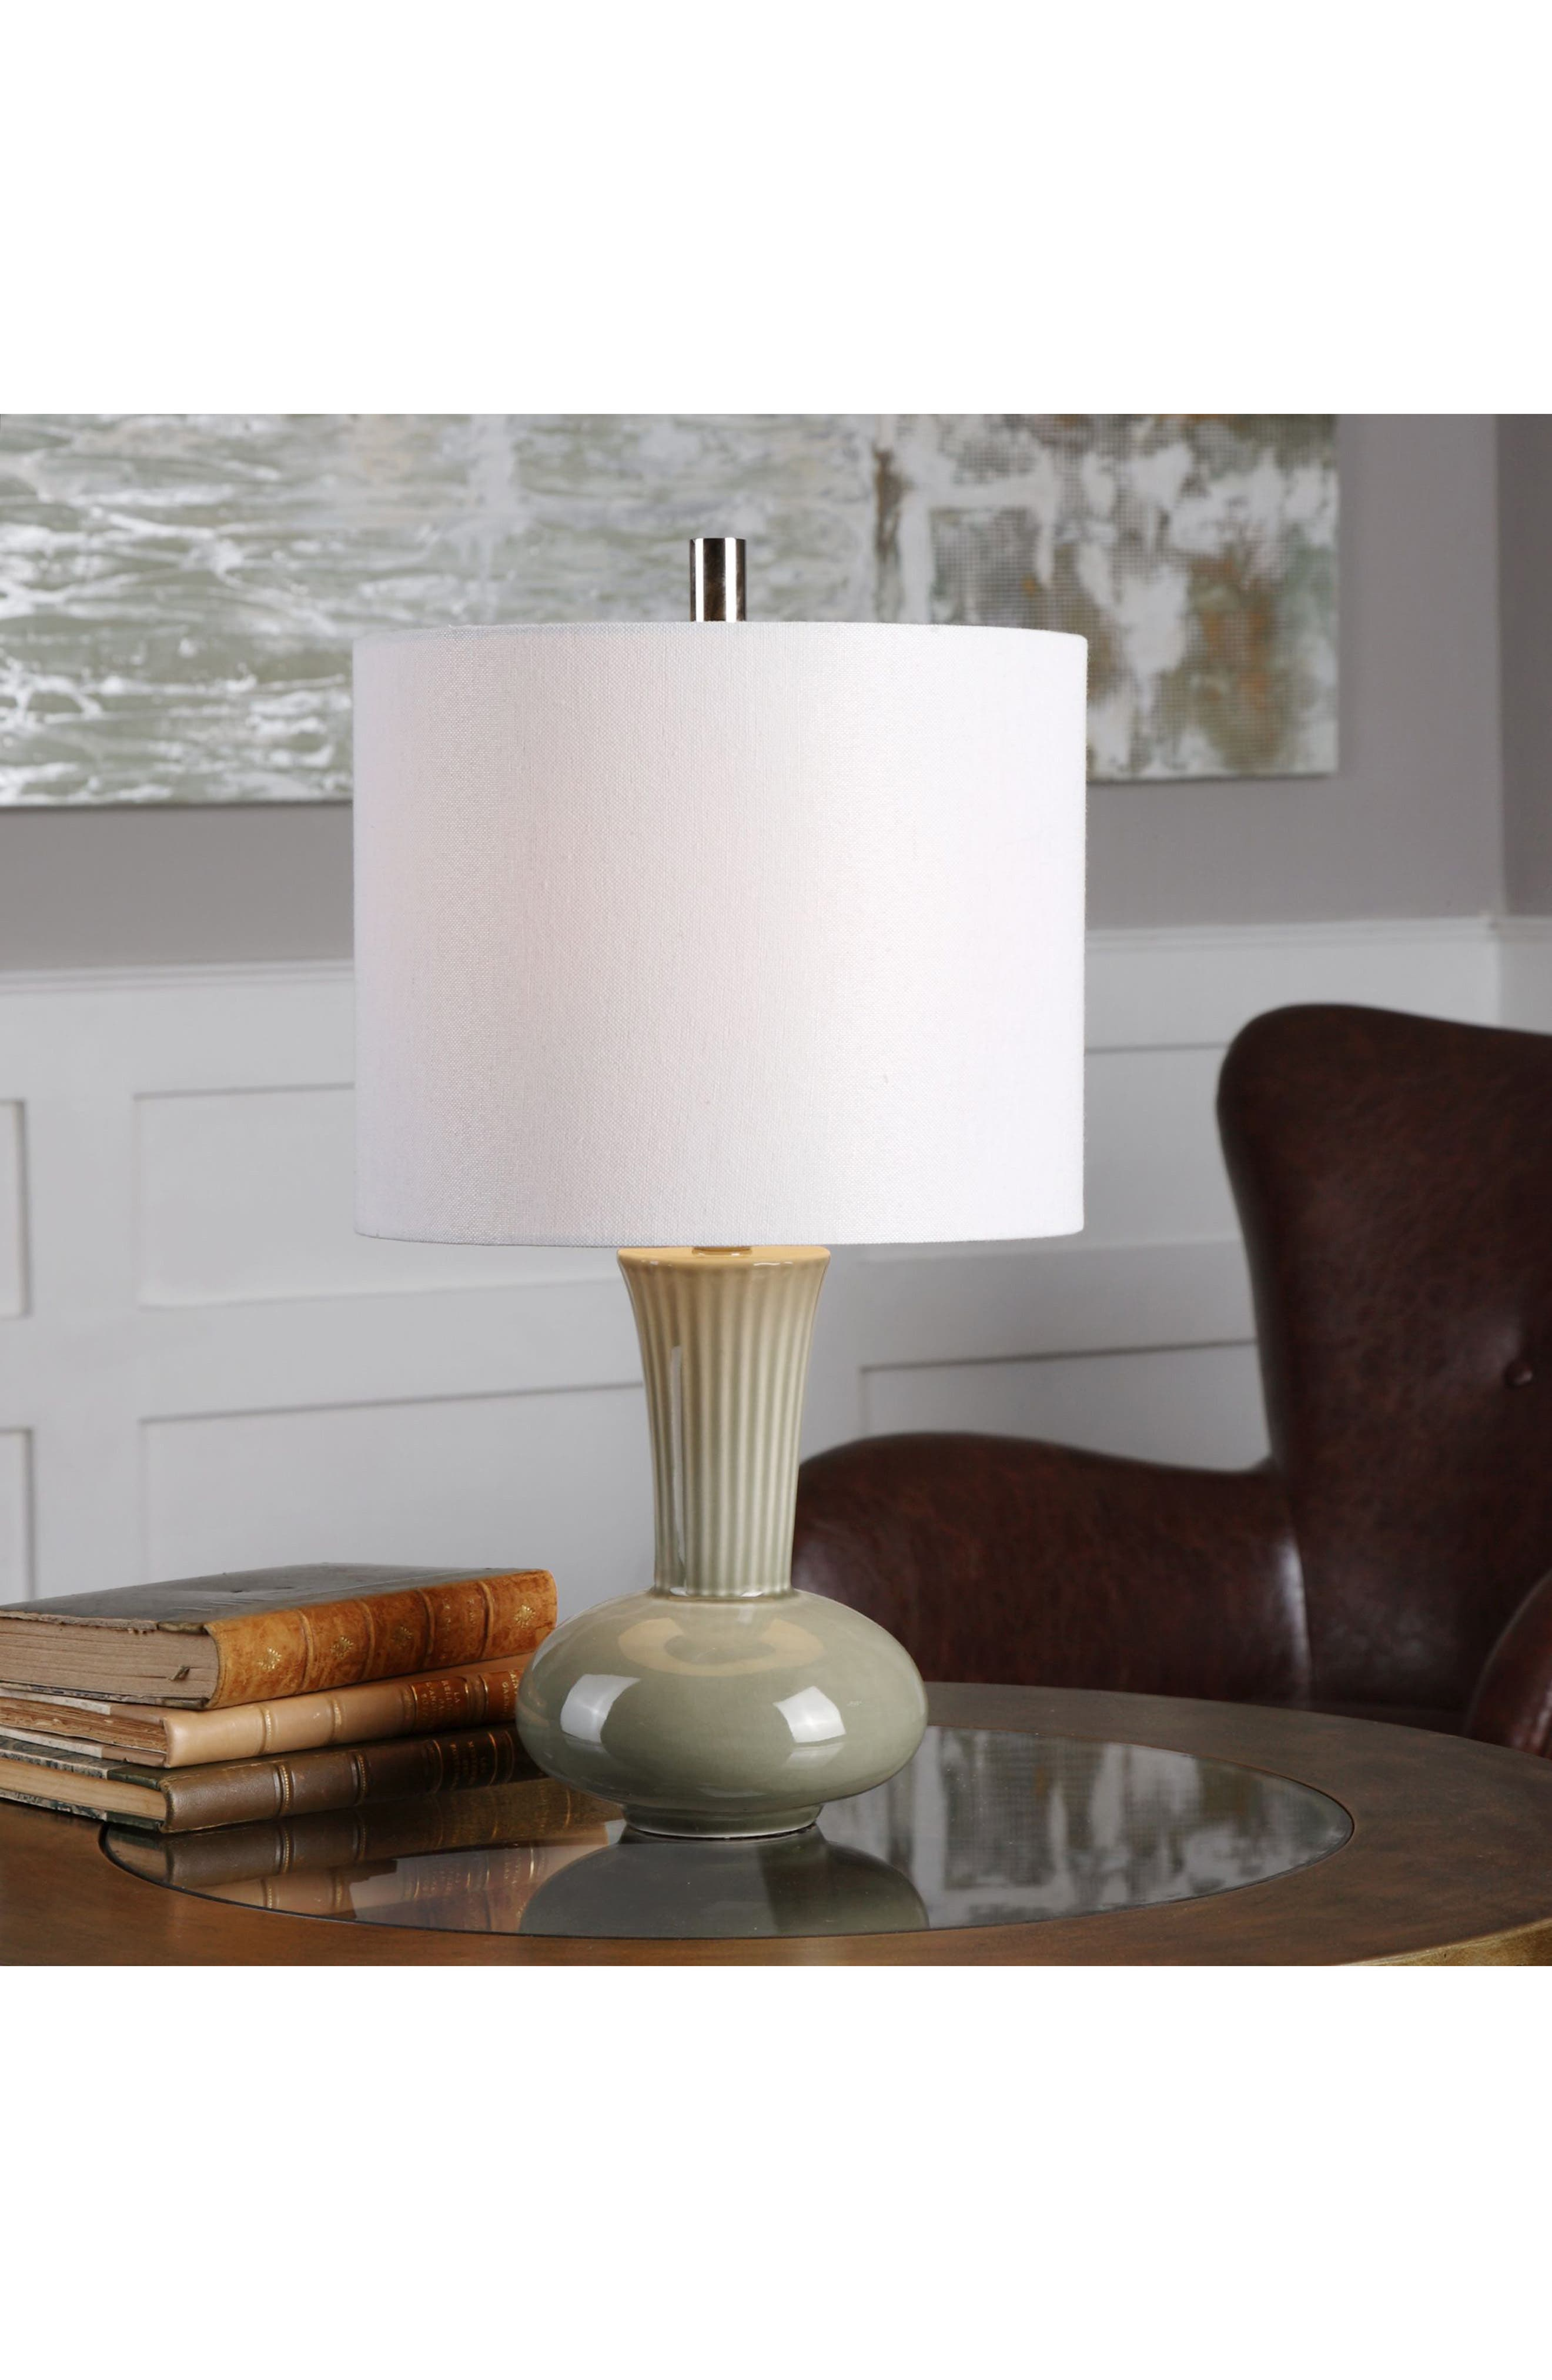 Luray Table Lamp,                             Alternate thumbnail 2, color,                             300